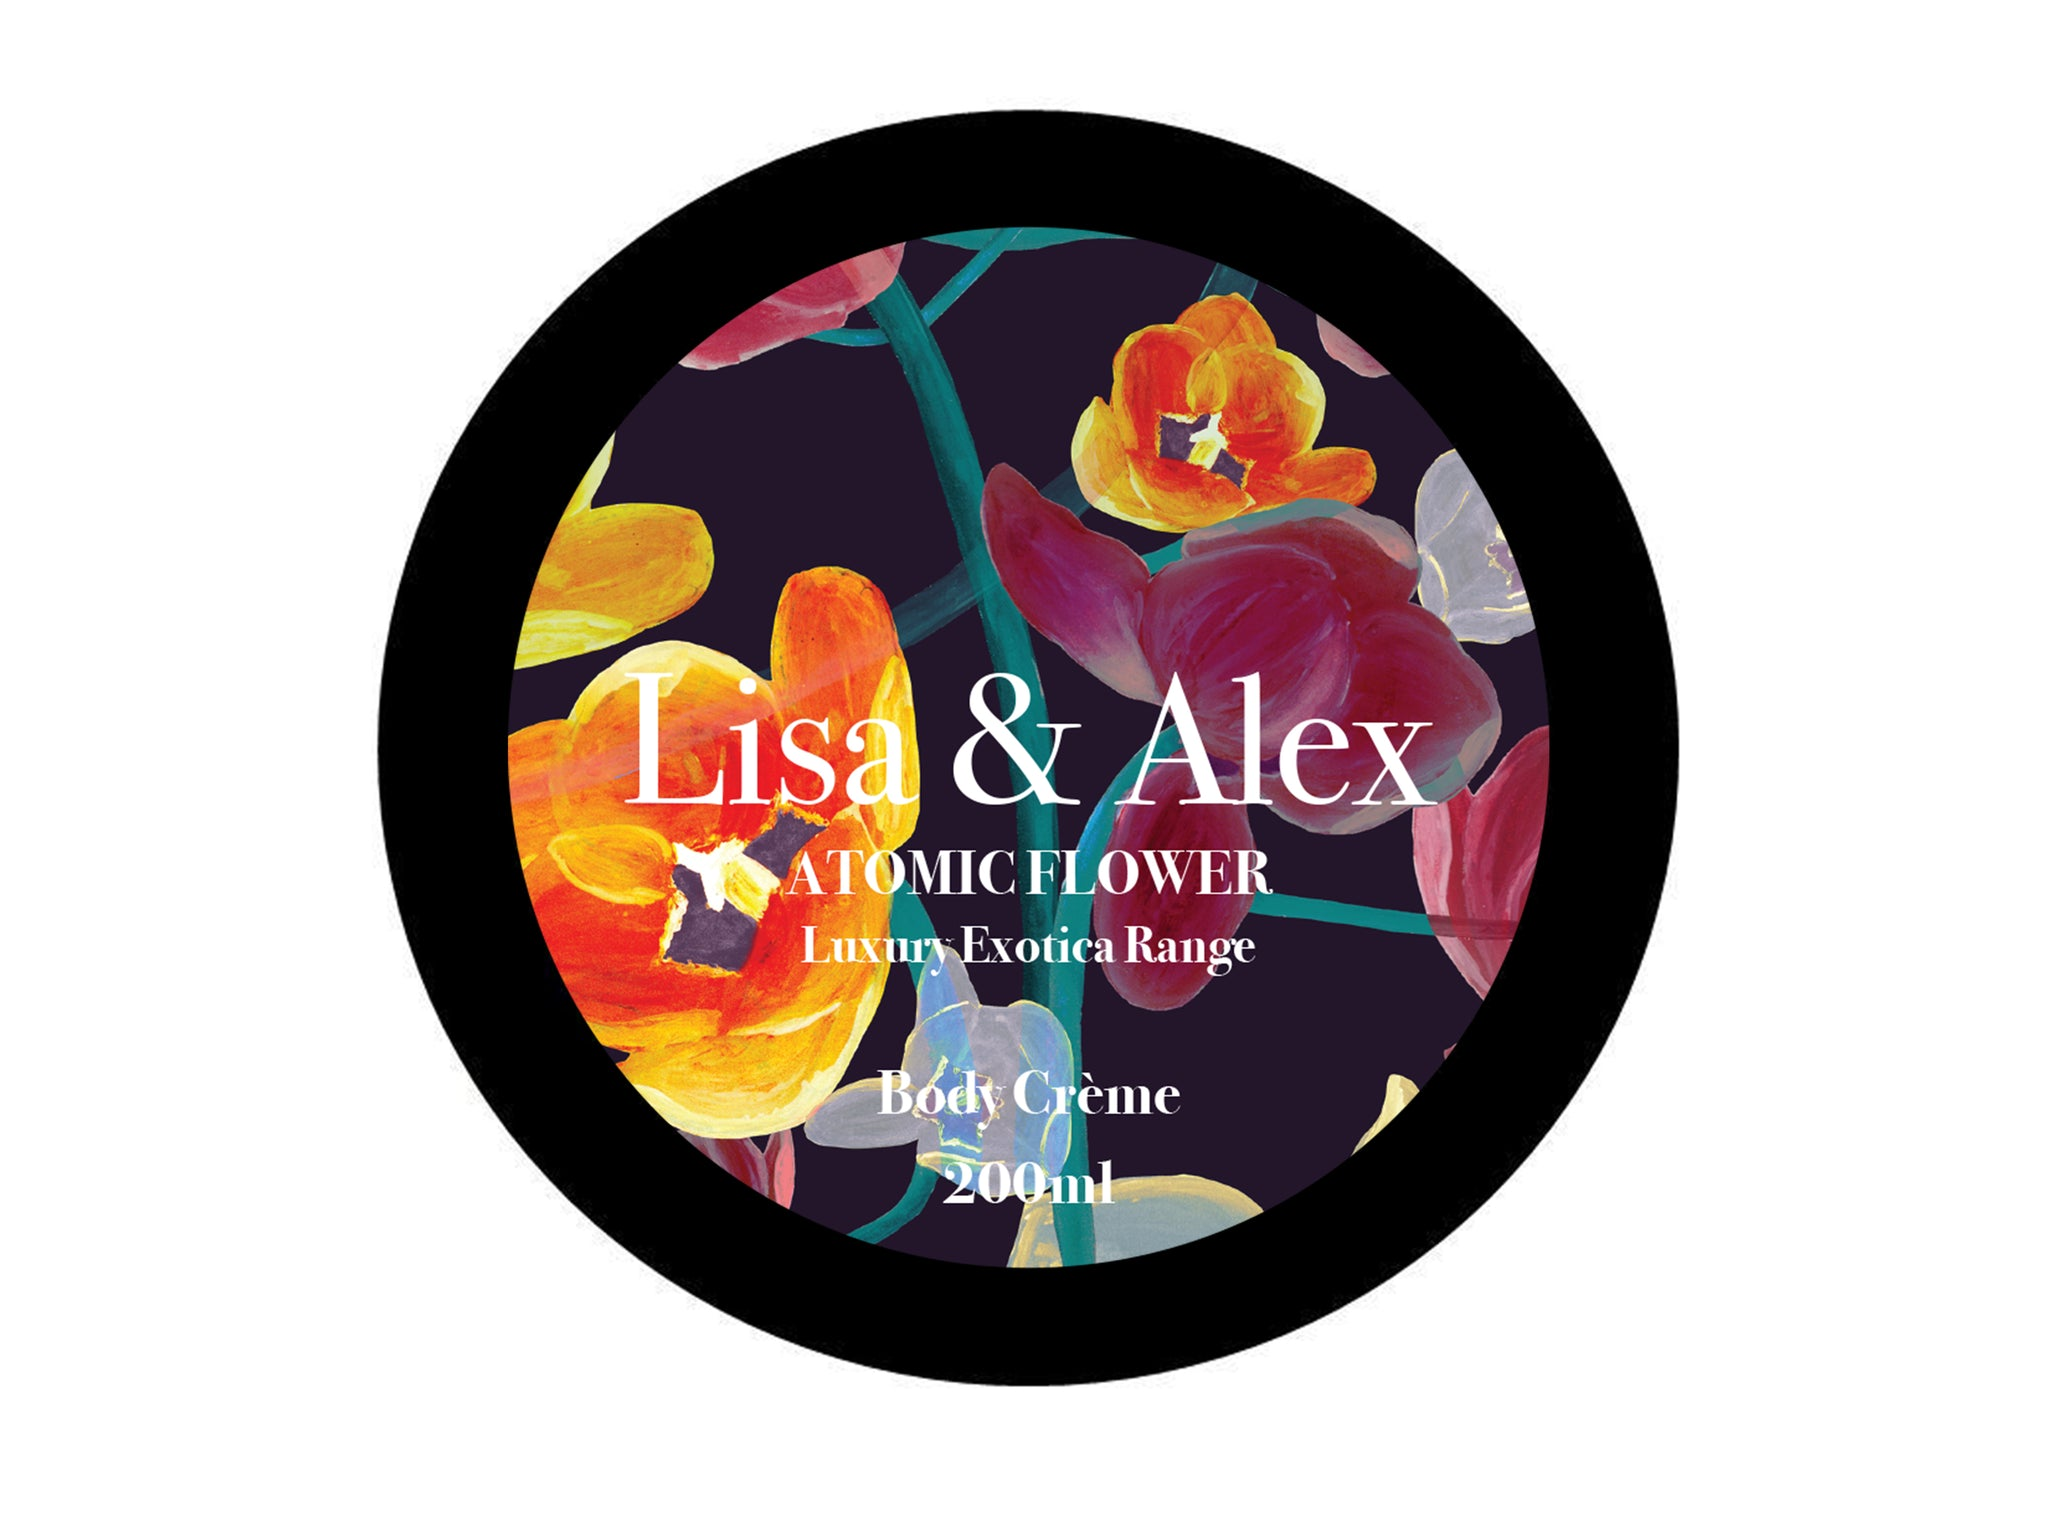 Lisa & Alex Atomic Flower Body Crème